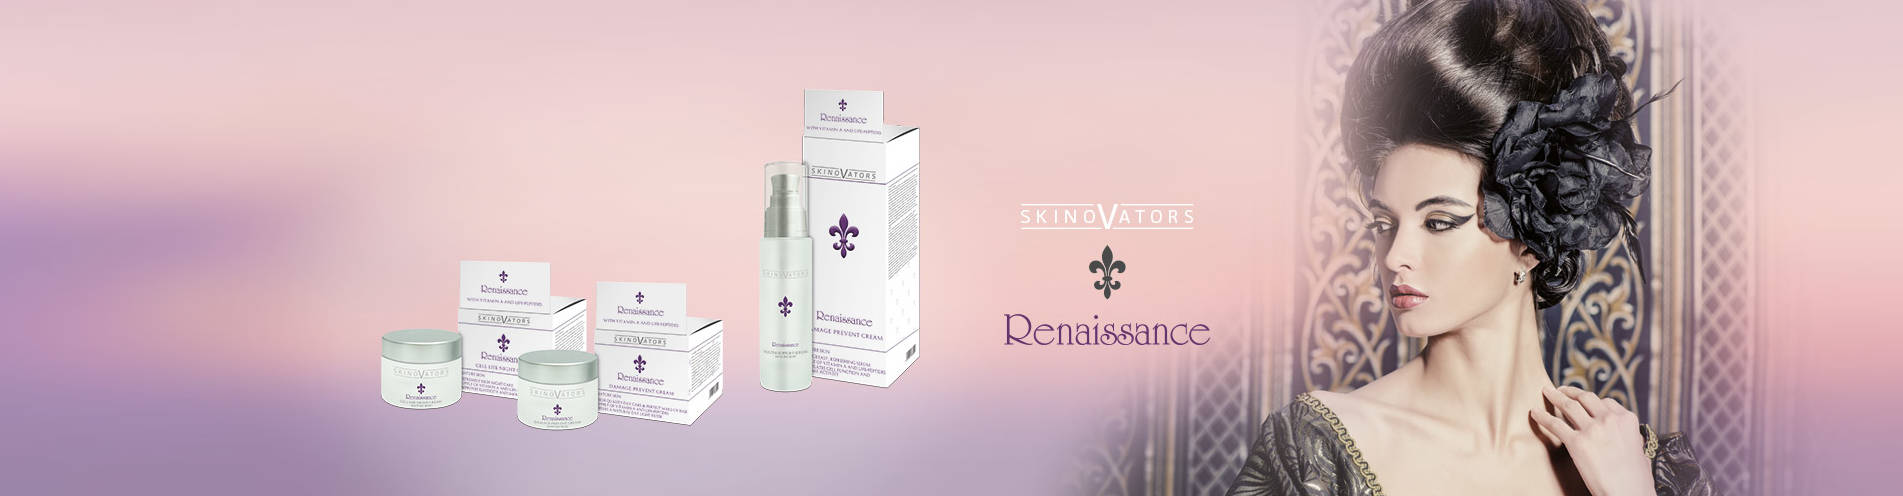 Skinovators Renaissance: Wrinkle preventing and age preventing cosmetic for private label